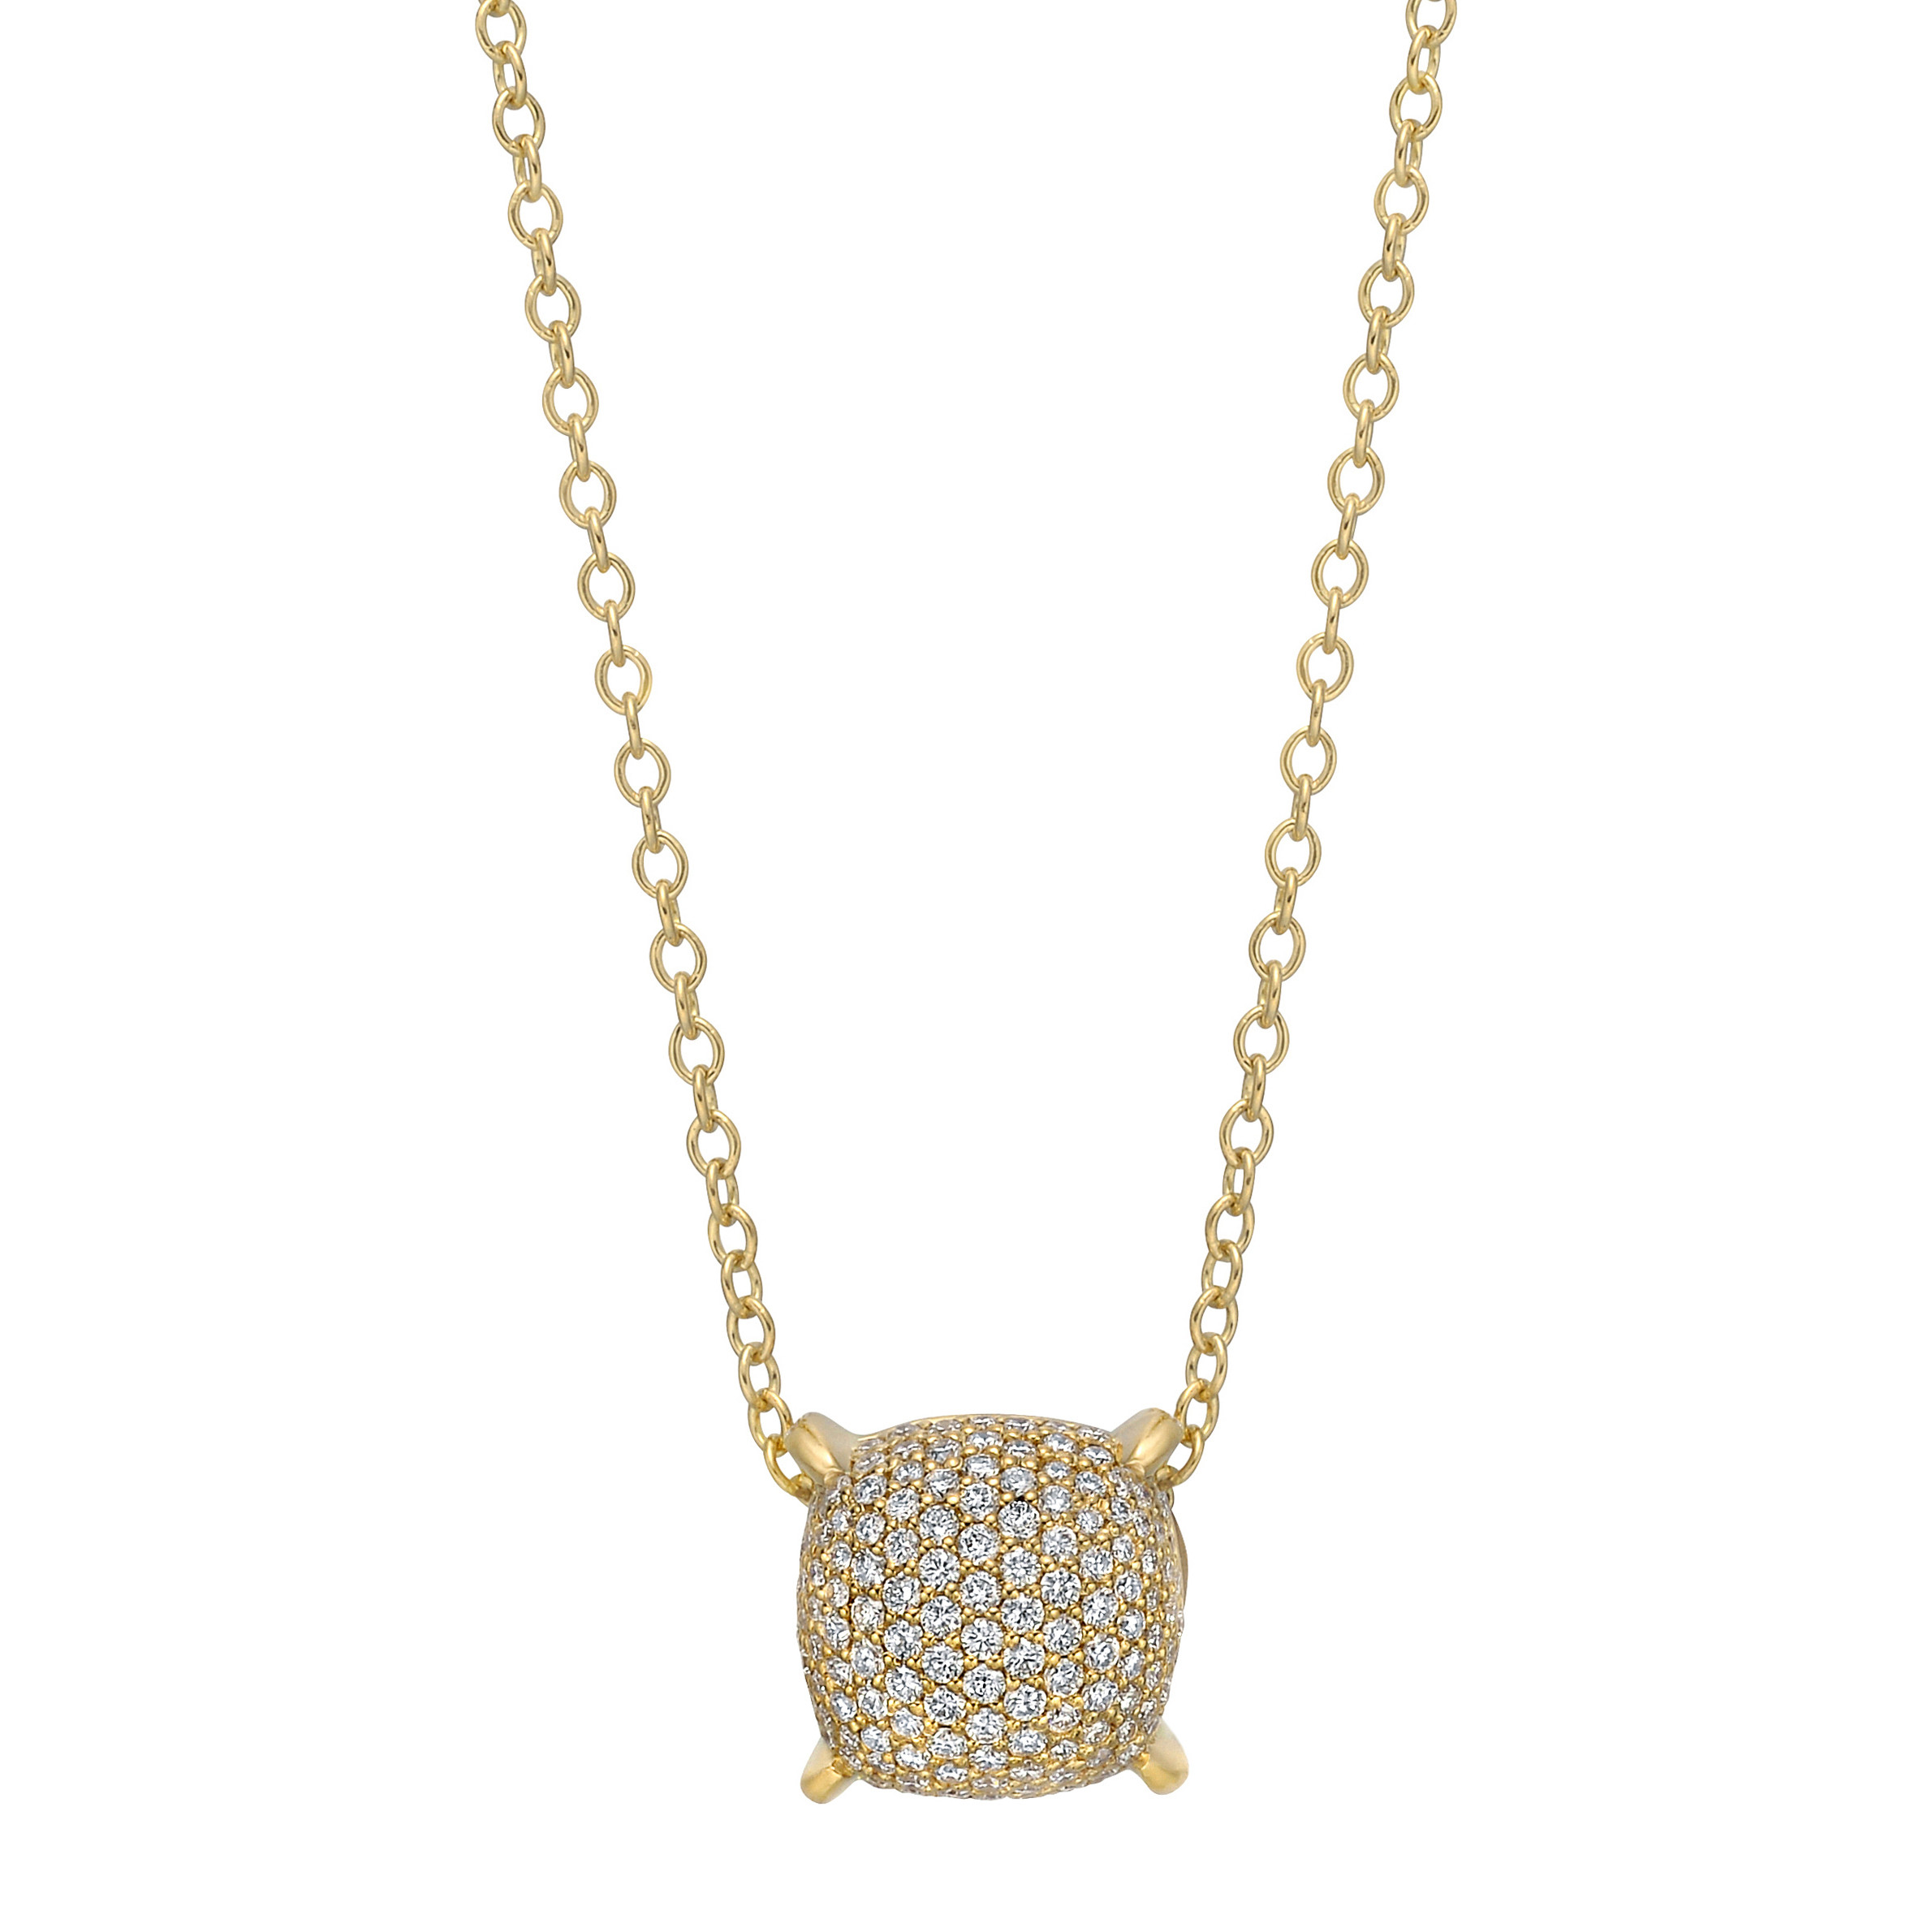 18k Yellow Gold & Pavé Diamond Cushion Pendant